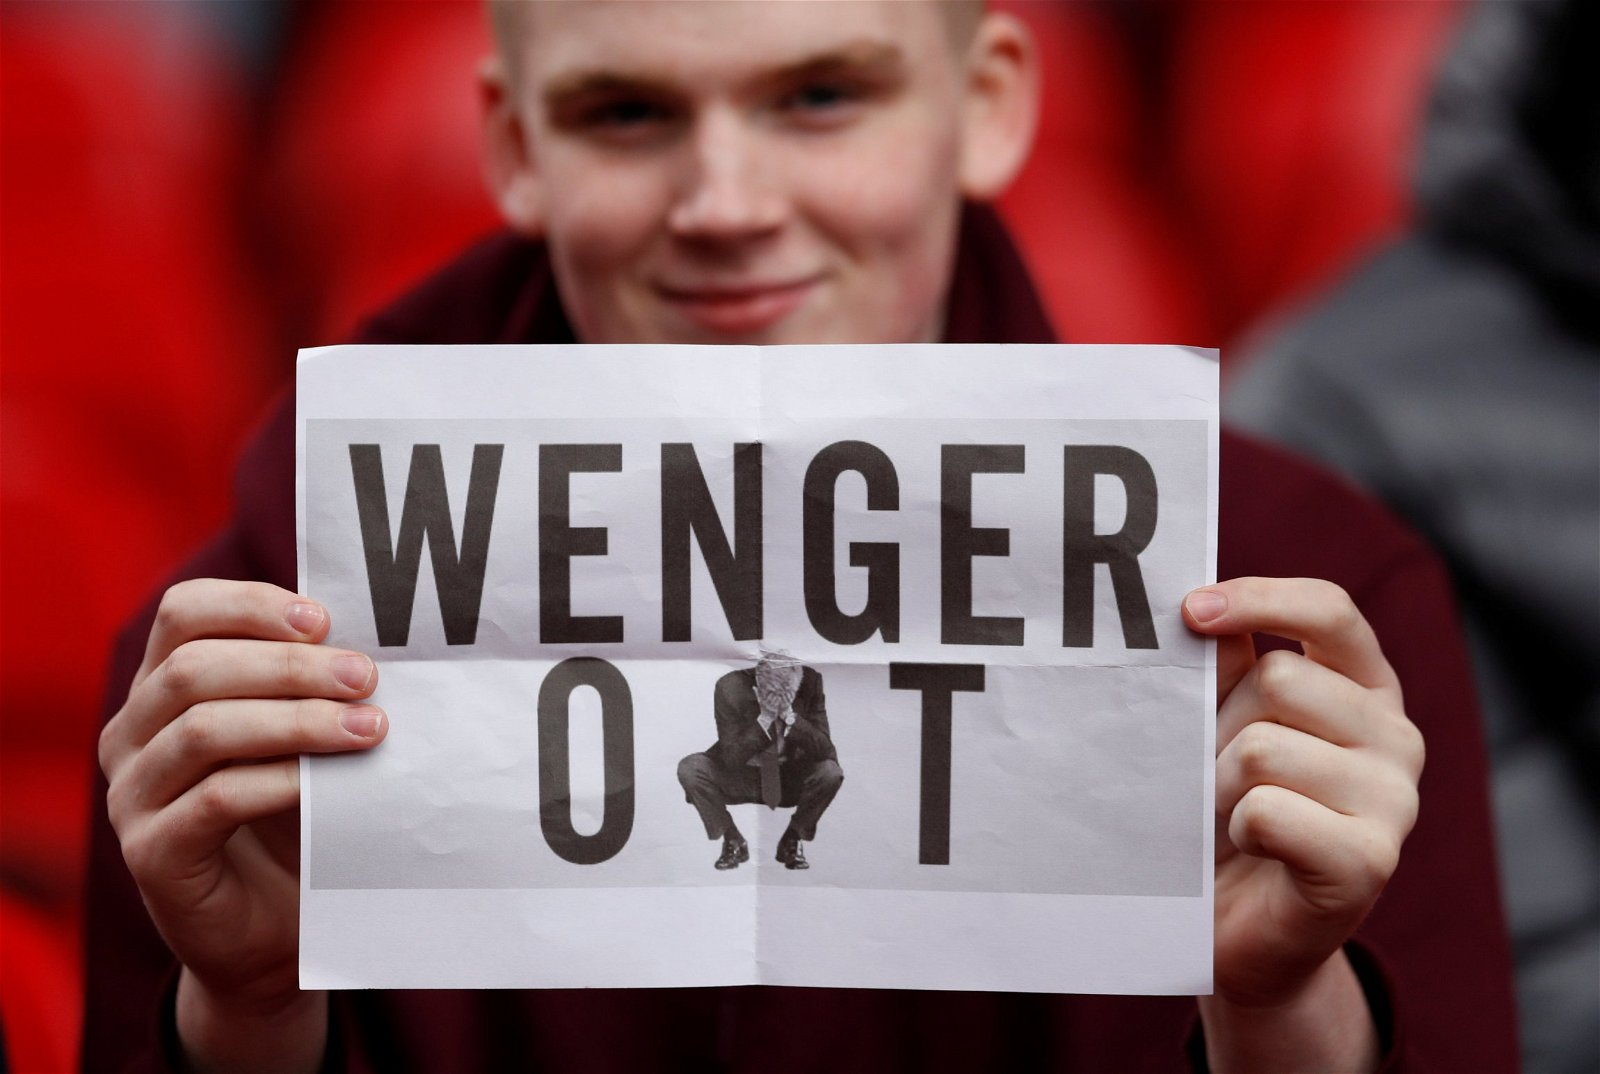 Fan holds up Wenger out poster